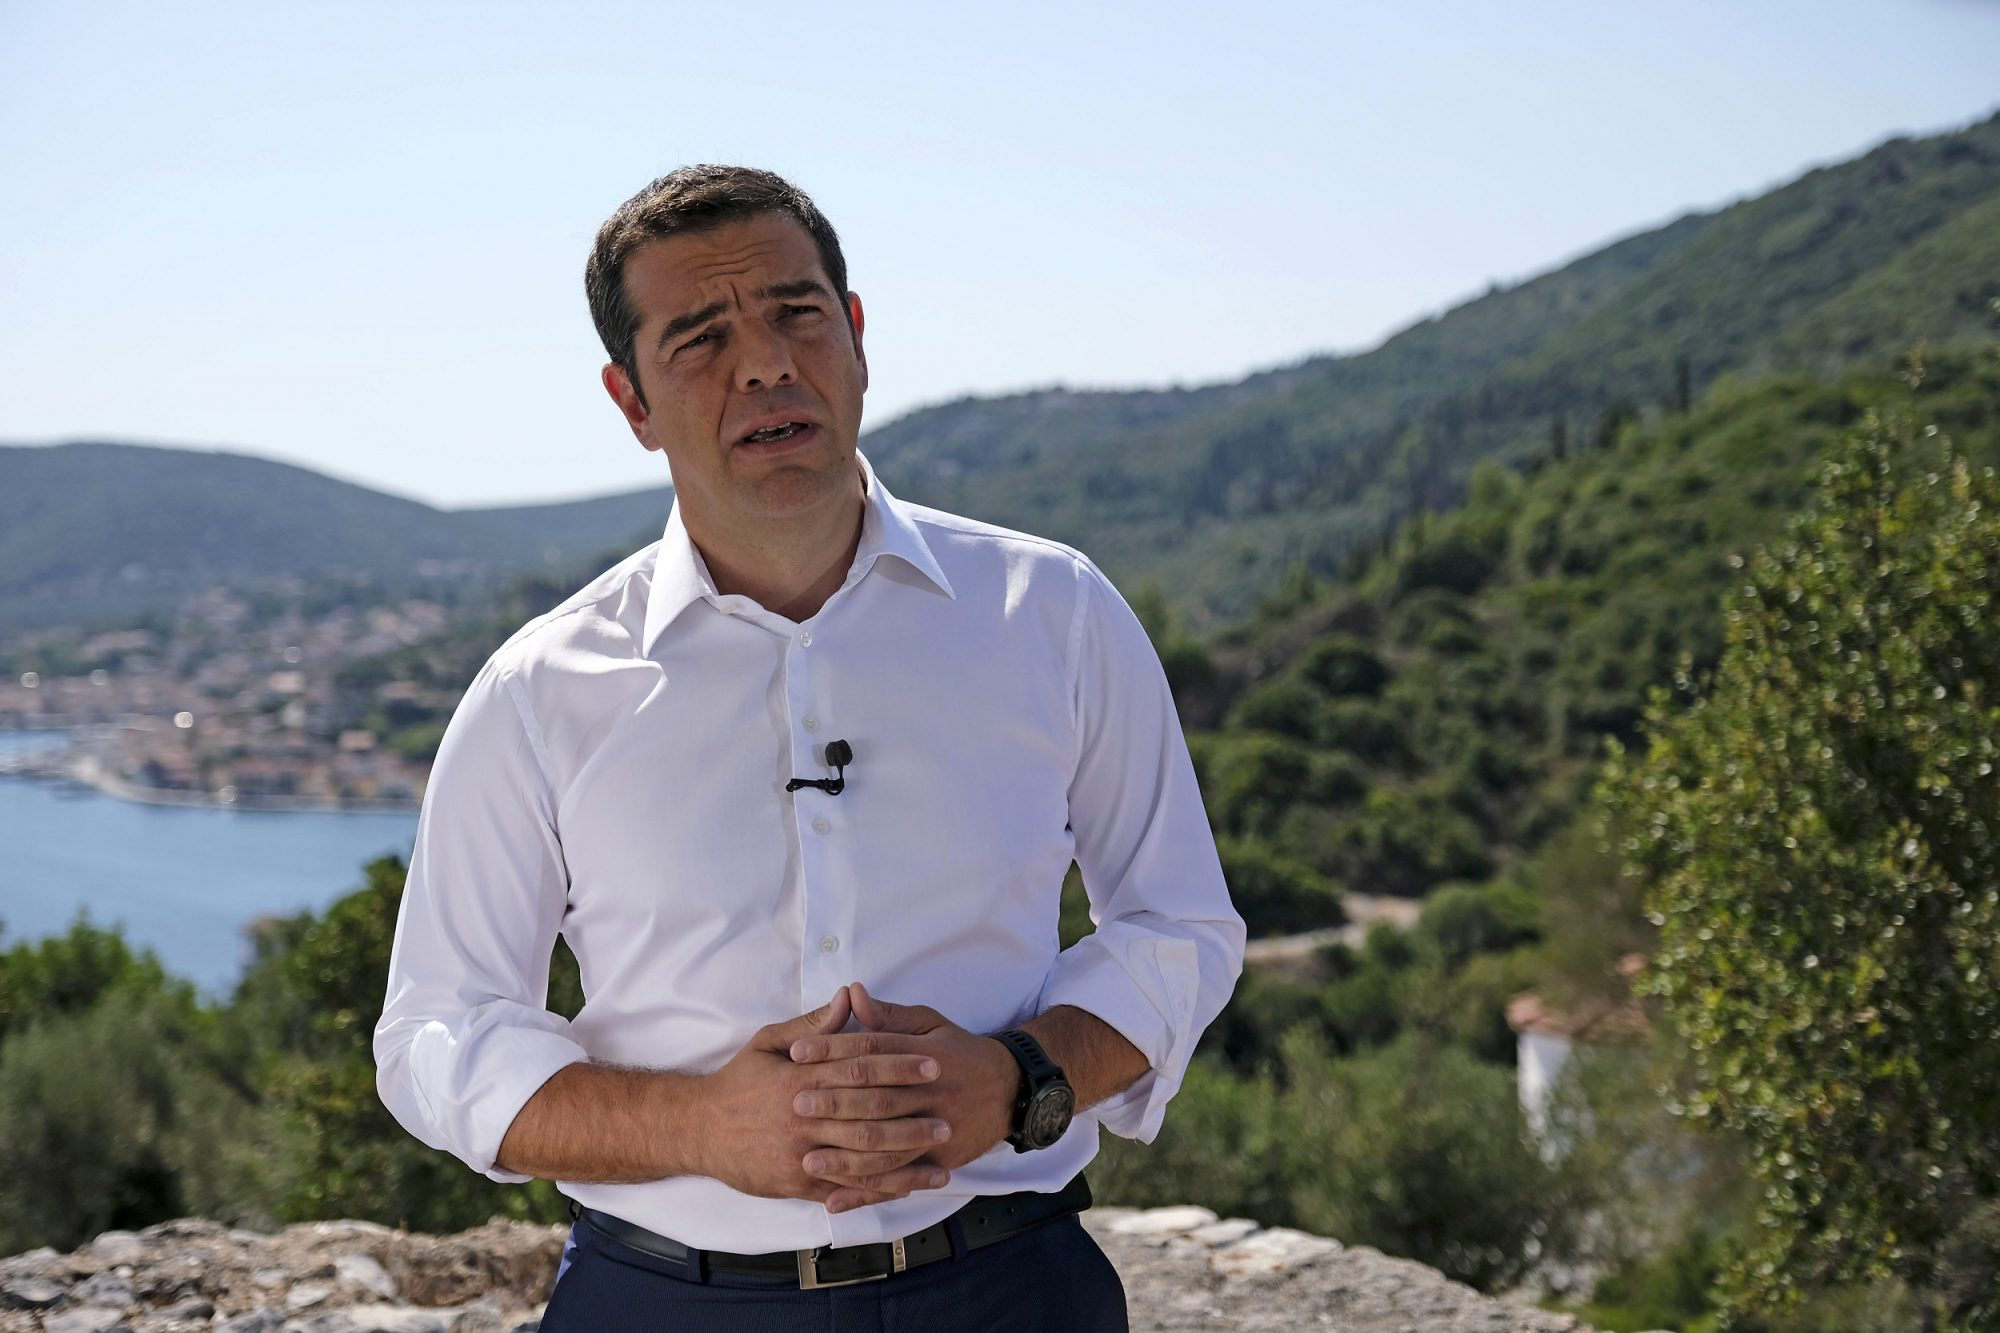 'Today is the beginning of a new era' said Greek PM from Ithaca, opposition condemned speech